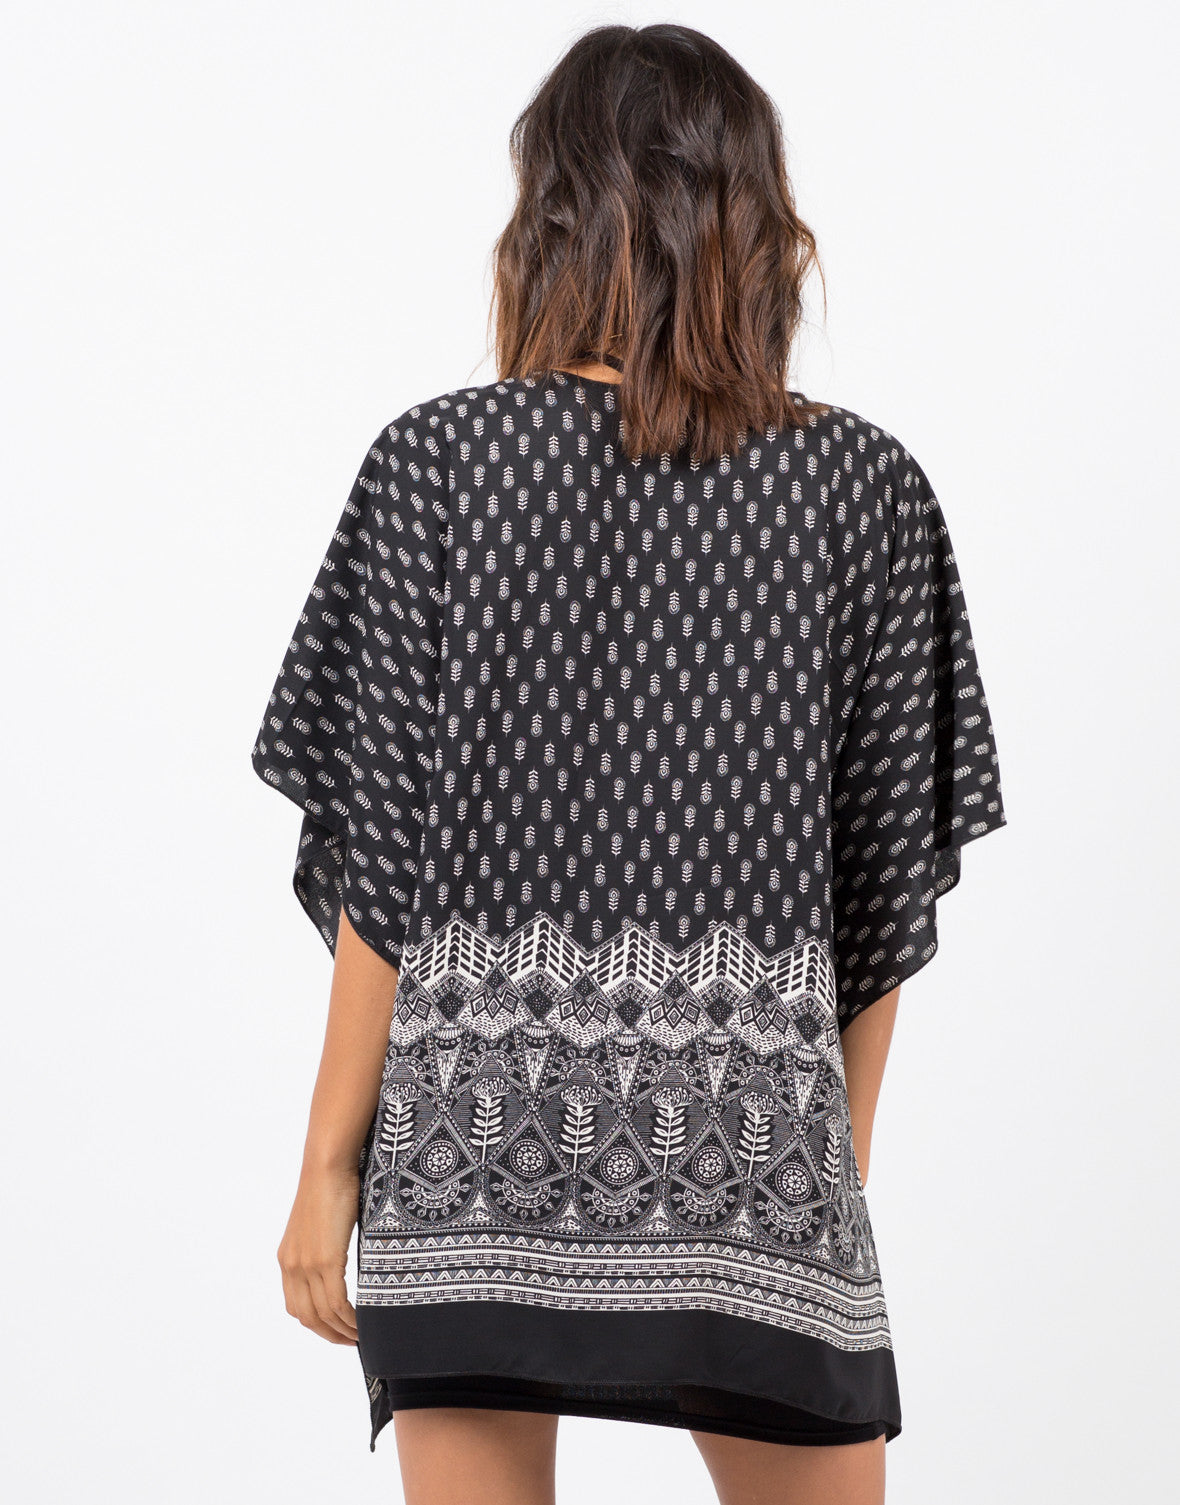 Back View of Printed Kimono Cardigan